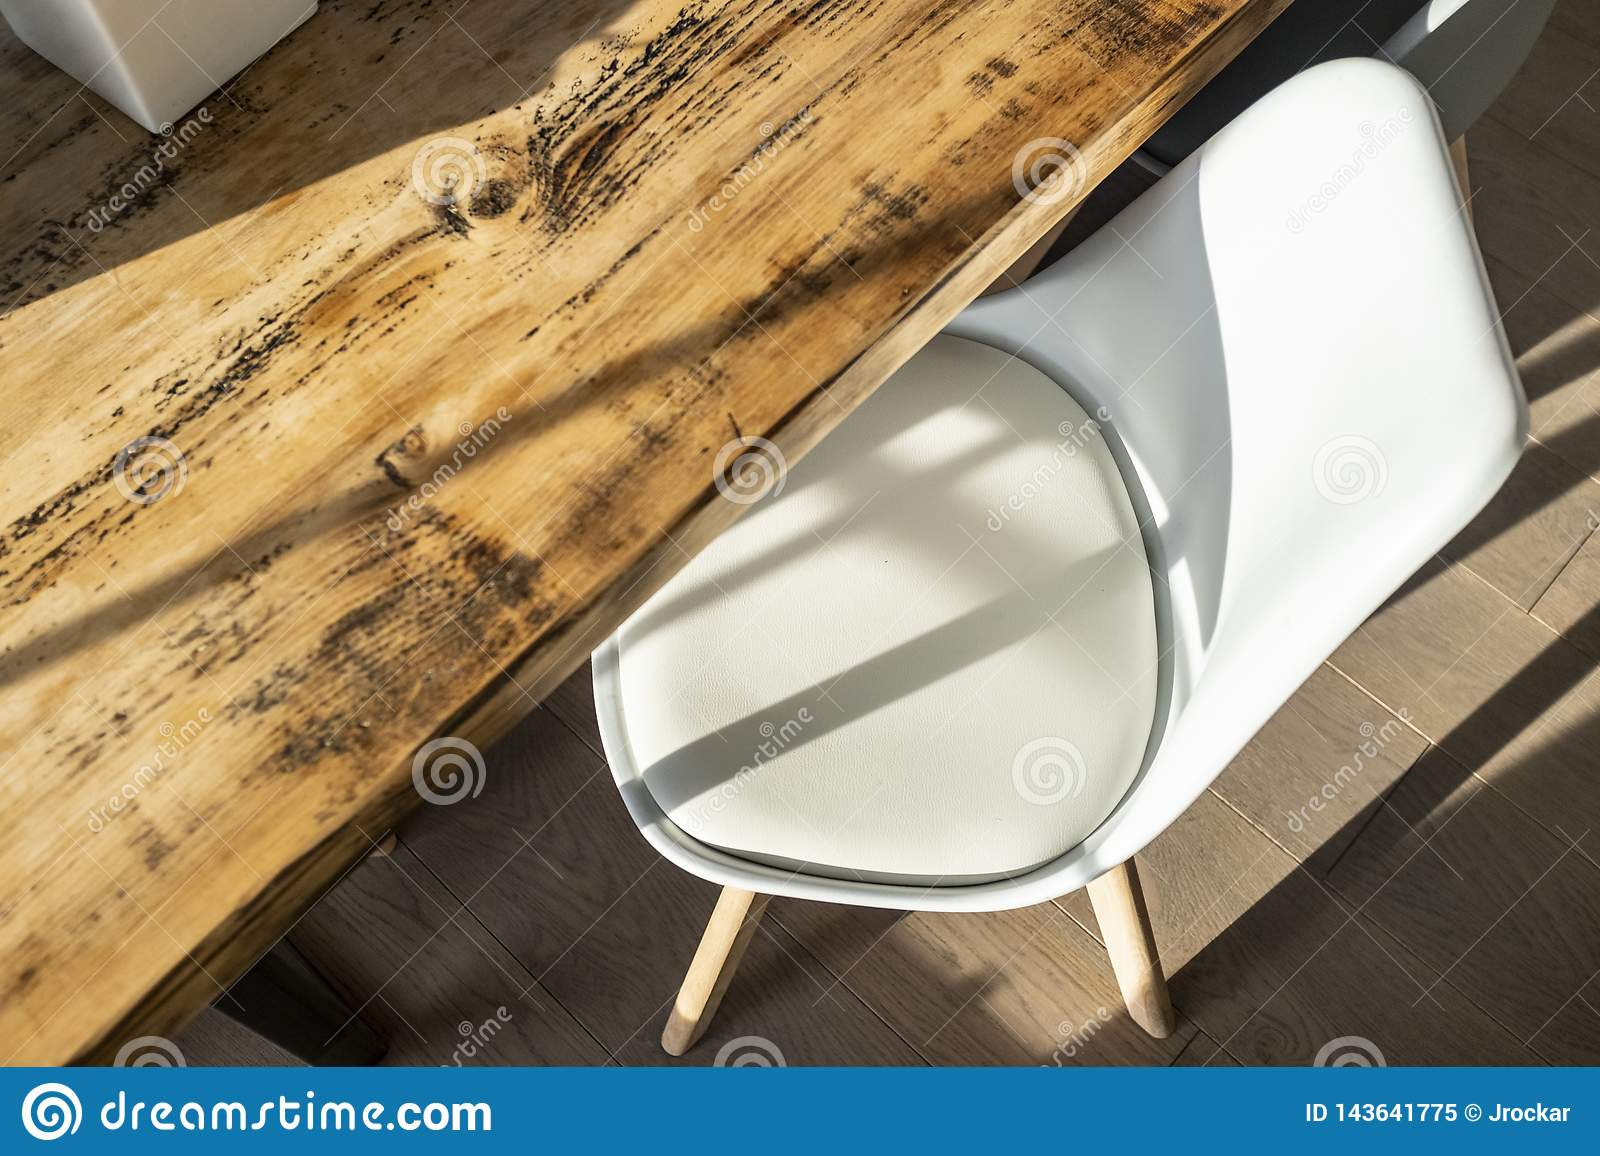 Picture of: Rustic Dining Table With White Faux Leather Chair Stock Image Image Of House White 143641775